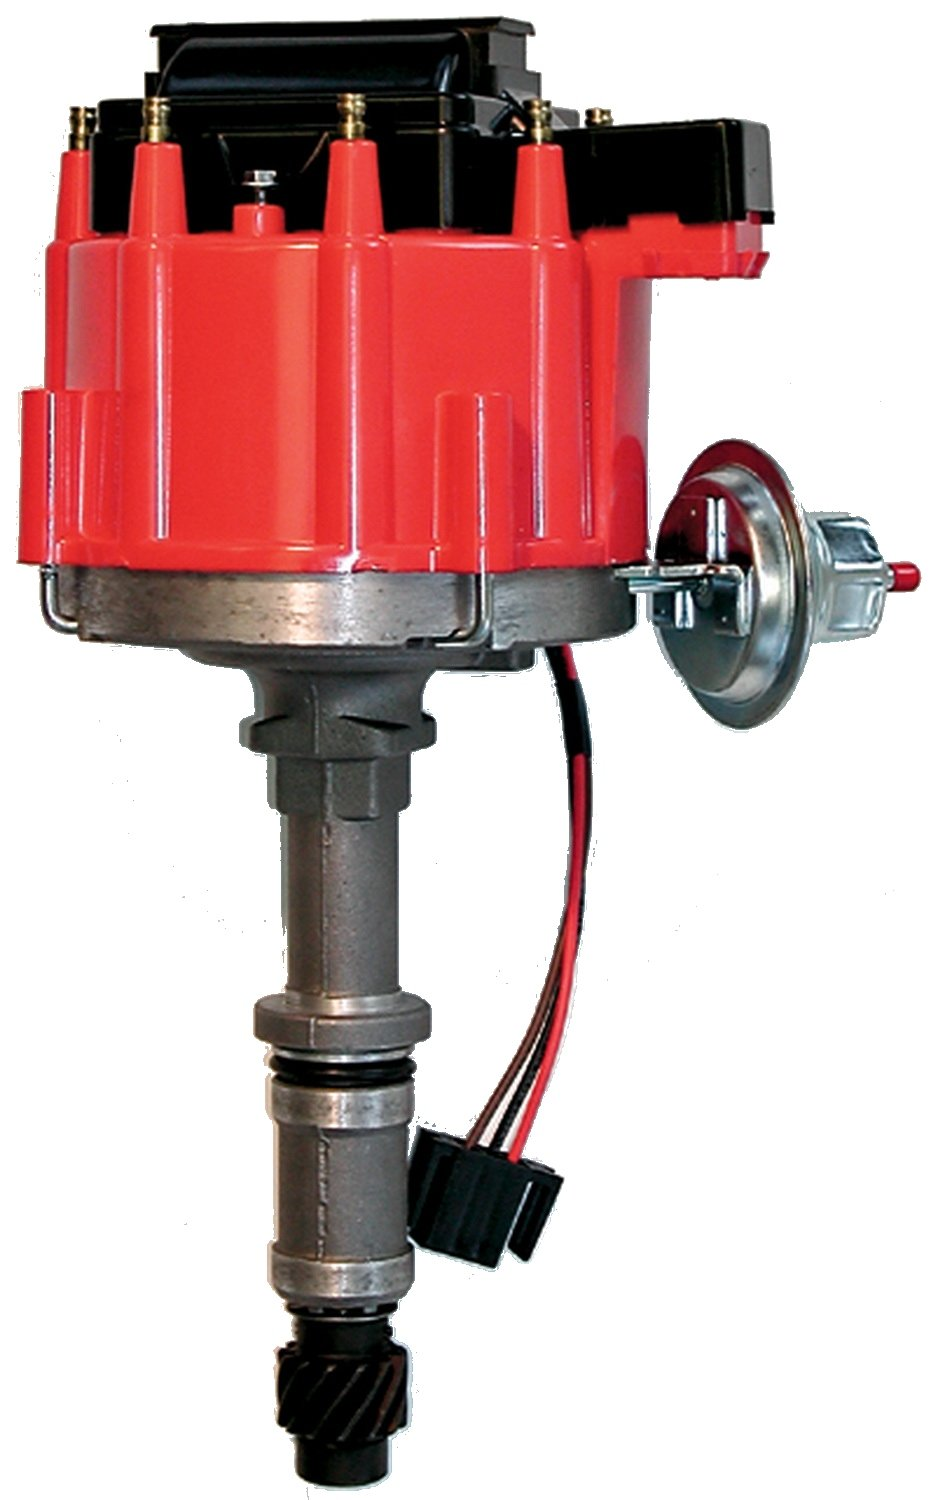 Proform 67088 Vacuum Advance Hei Distributor With Steel Ford 460 Msd Wiring Gear And Red Cap For Buick 215 350 Automotive